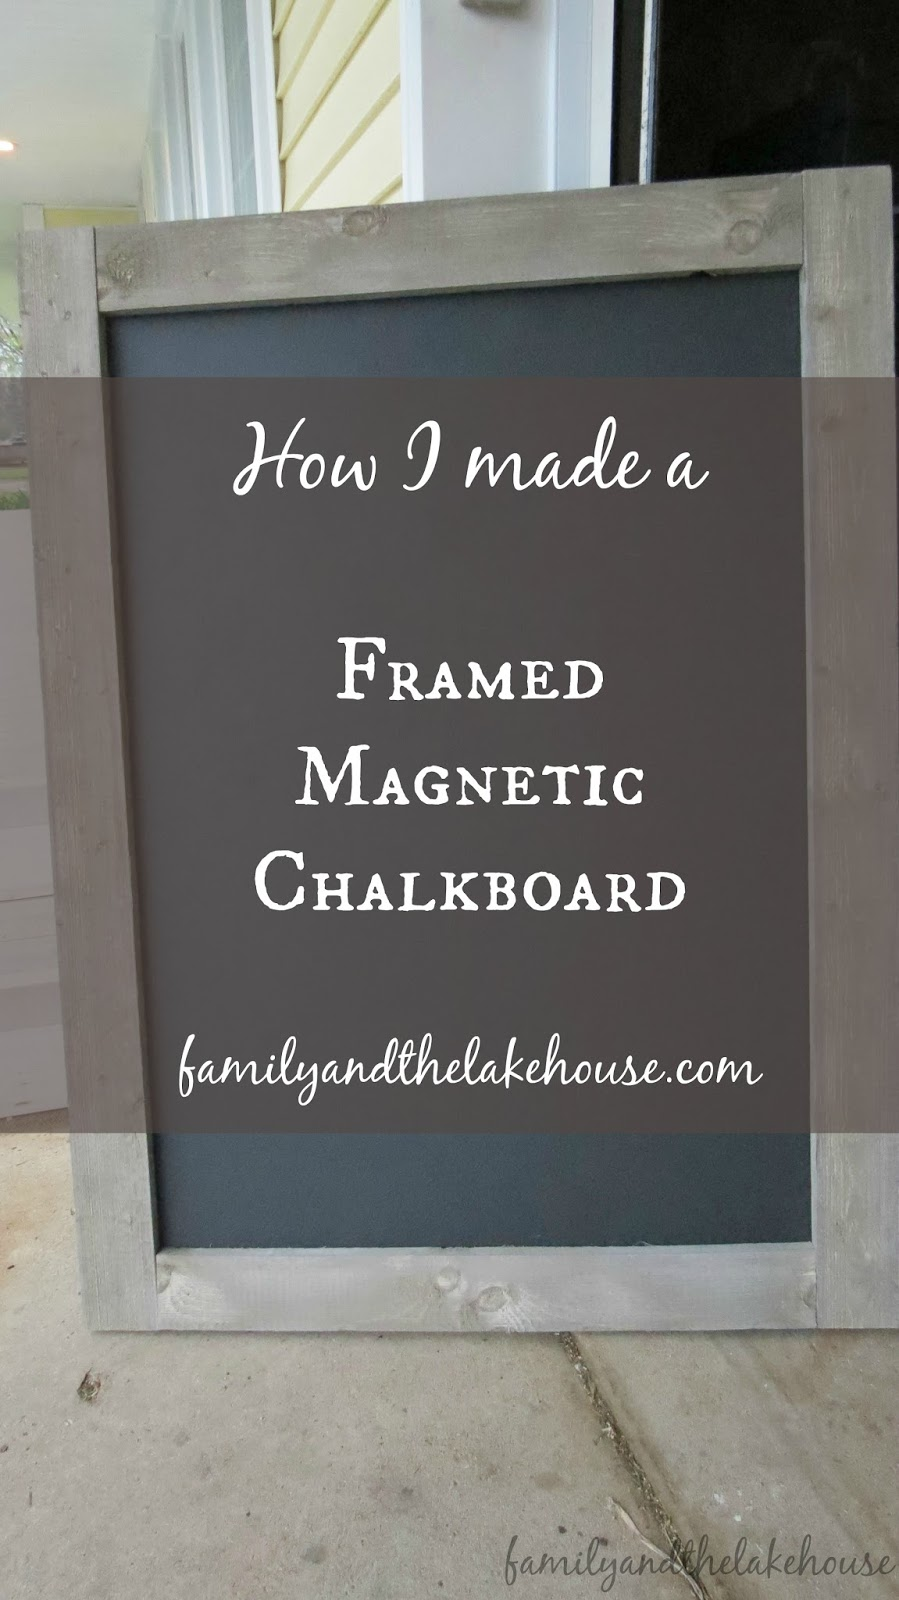 Family and the Lake House: A Framed Magnetic Chalkboard